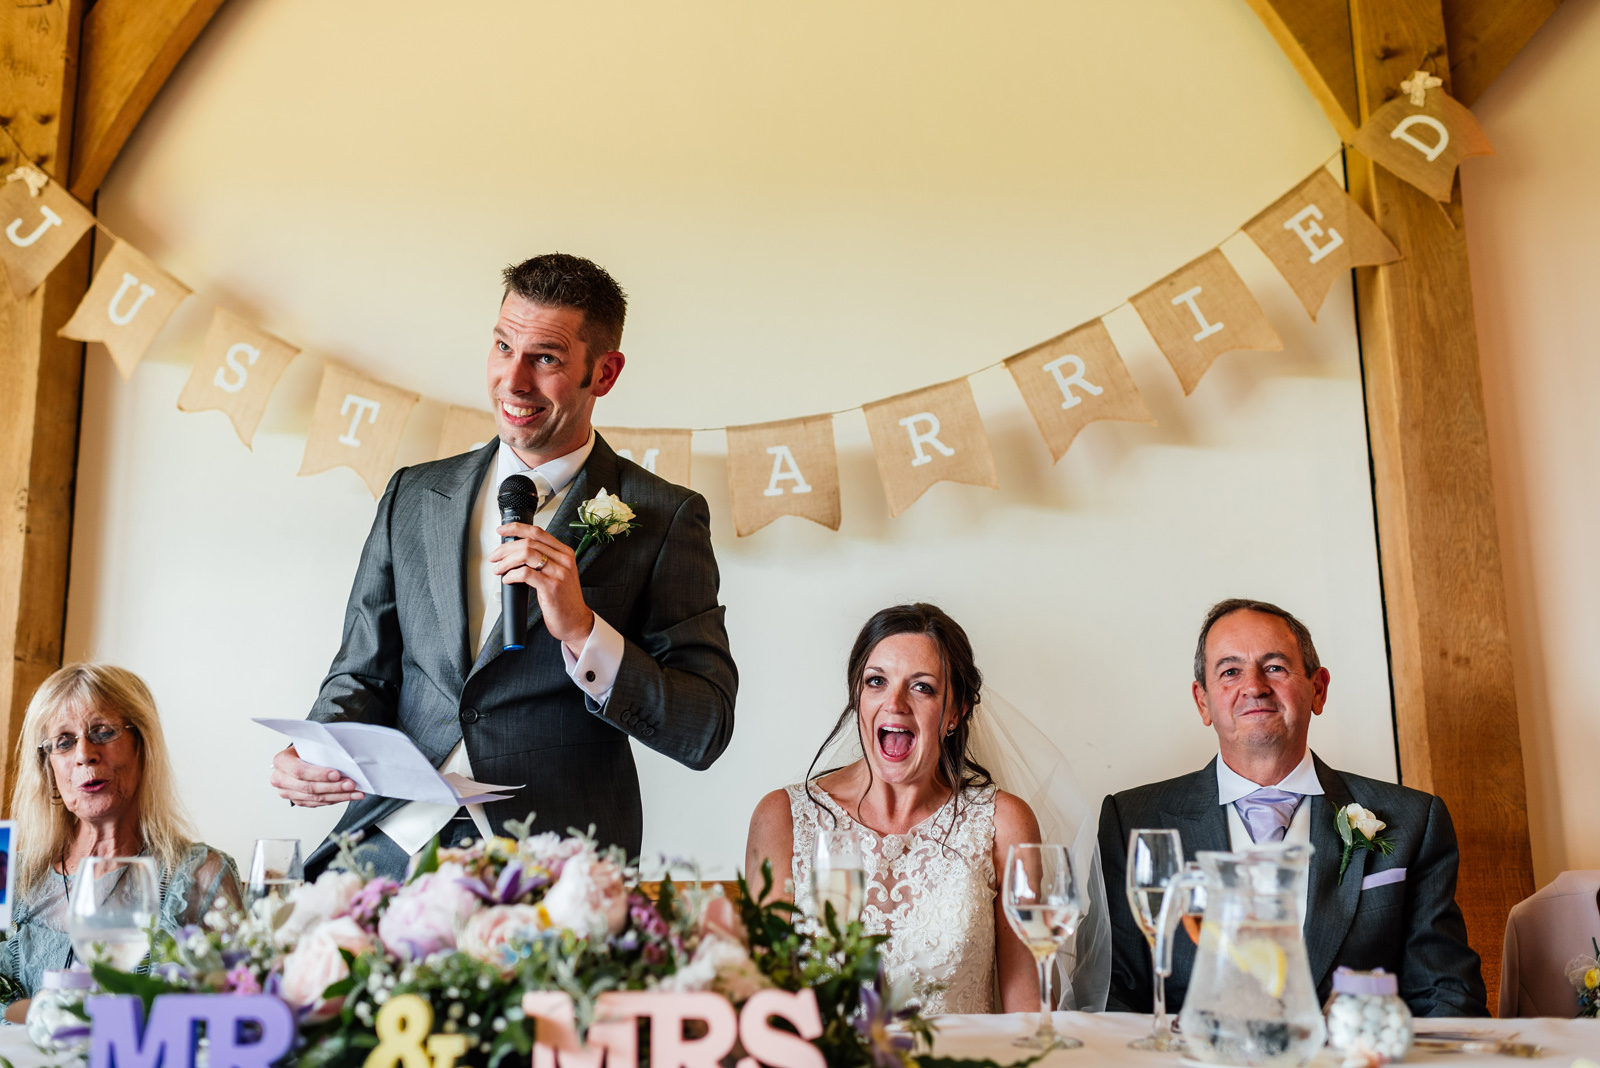 Groom's speech on wedding day